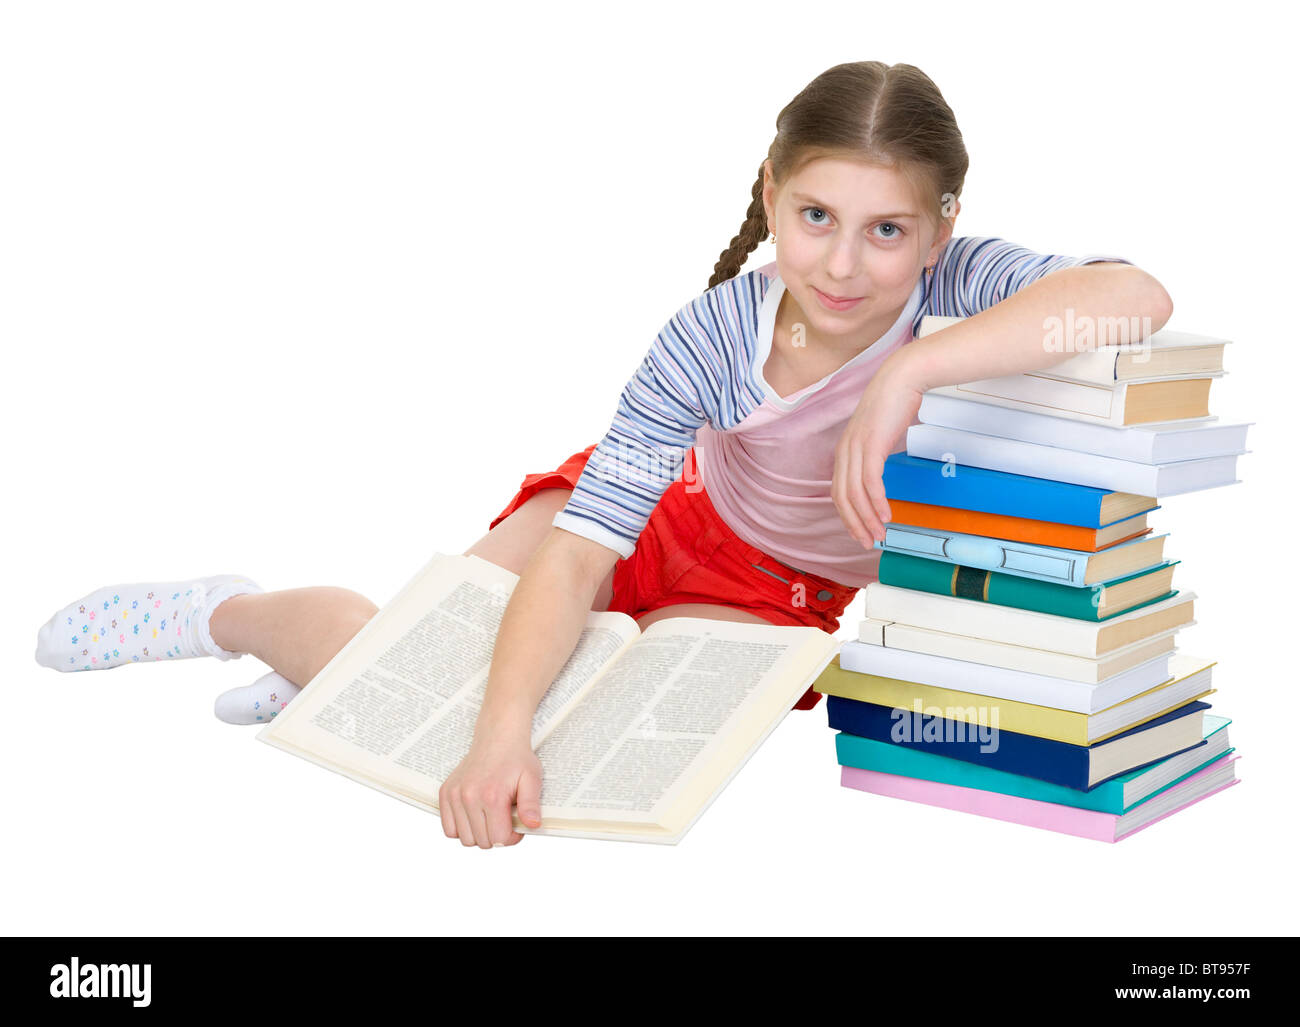 Girl sits having leant the elbows on a pile of books - Stock Image